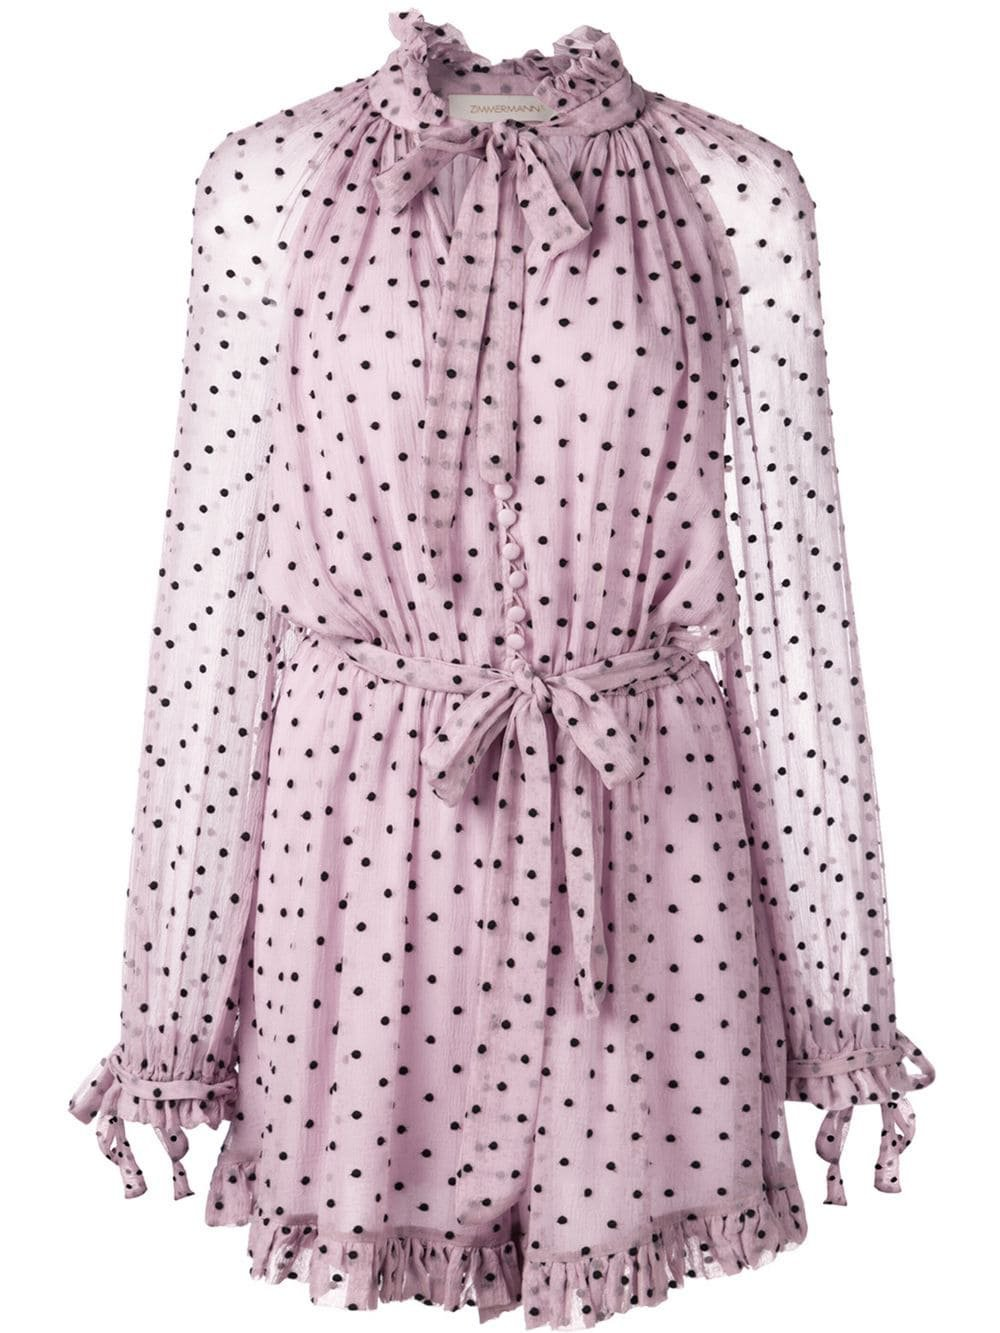 Zimmermann polka dot print playsuit $695 - Buy Online - Mobile Friendly, Fast Delivery, Price